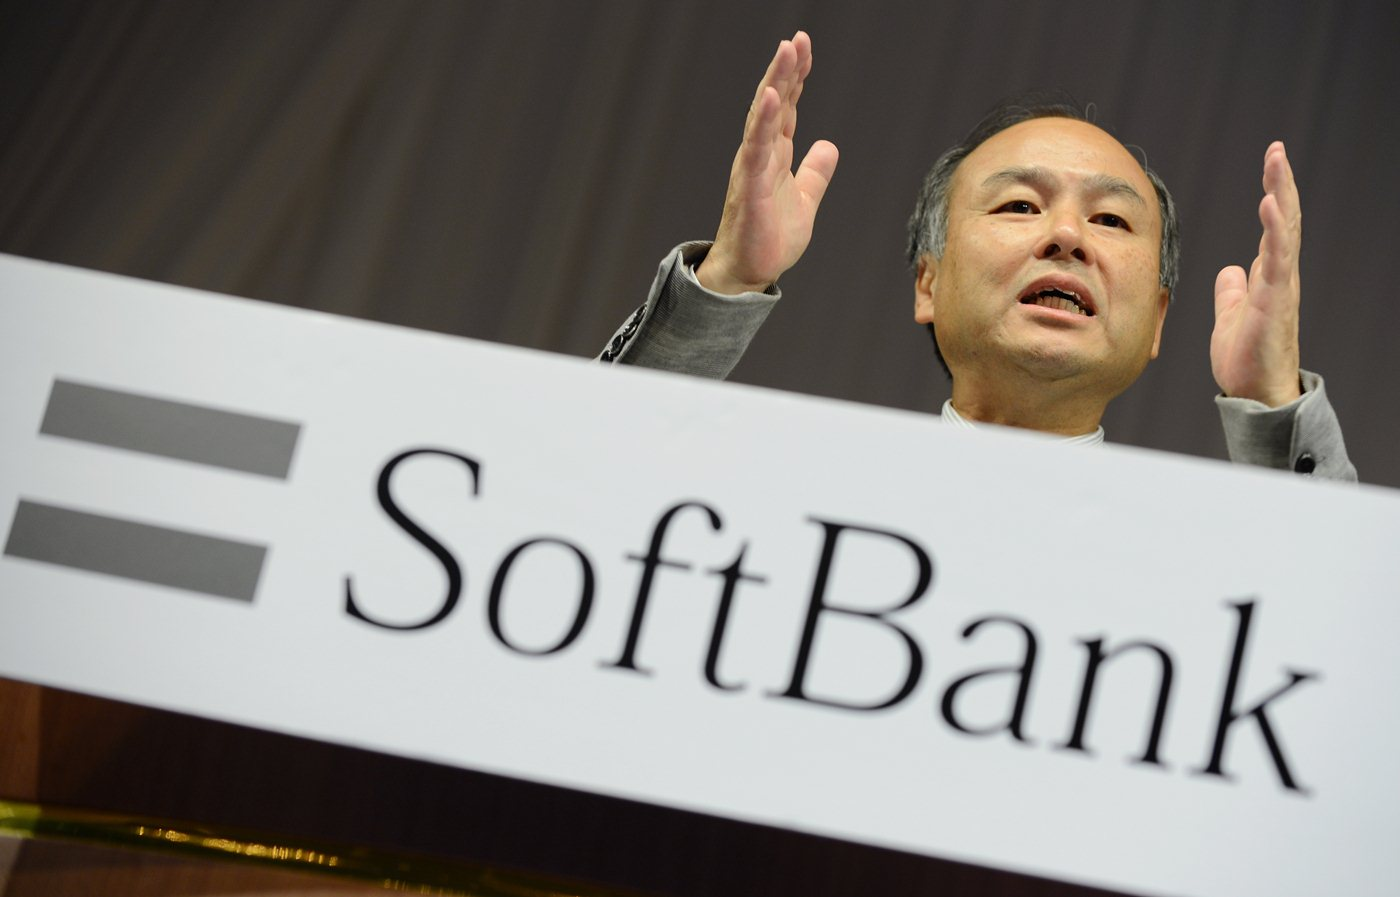 Japan's third carrier Softbank to buy smaller rival eAccess for $1.8 billion